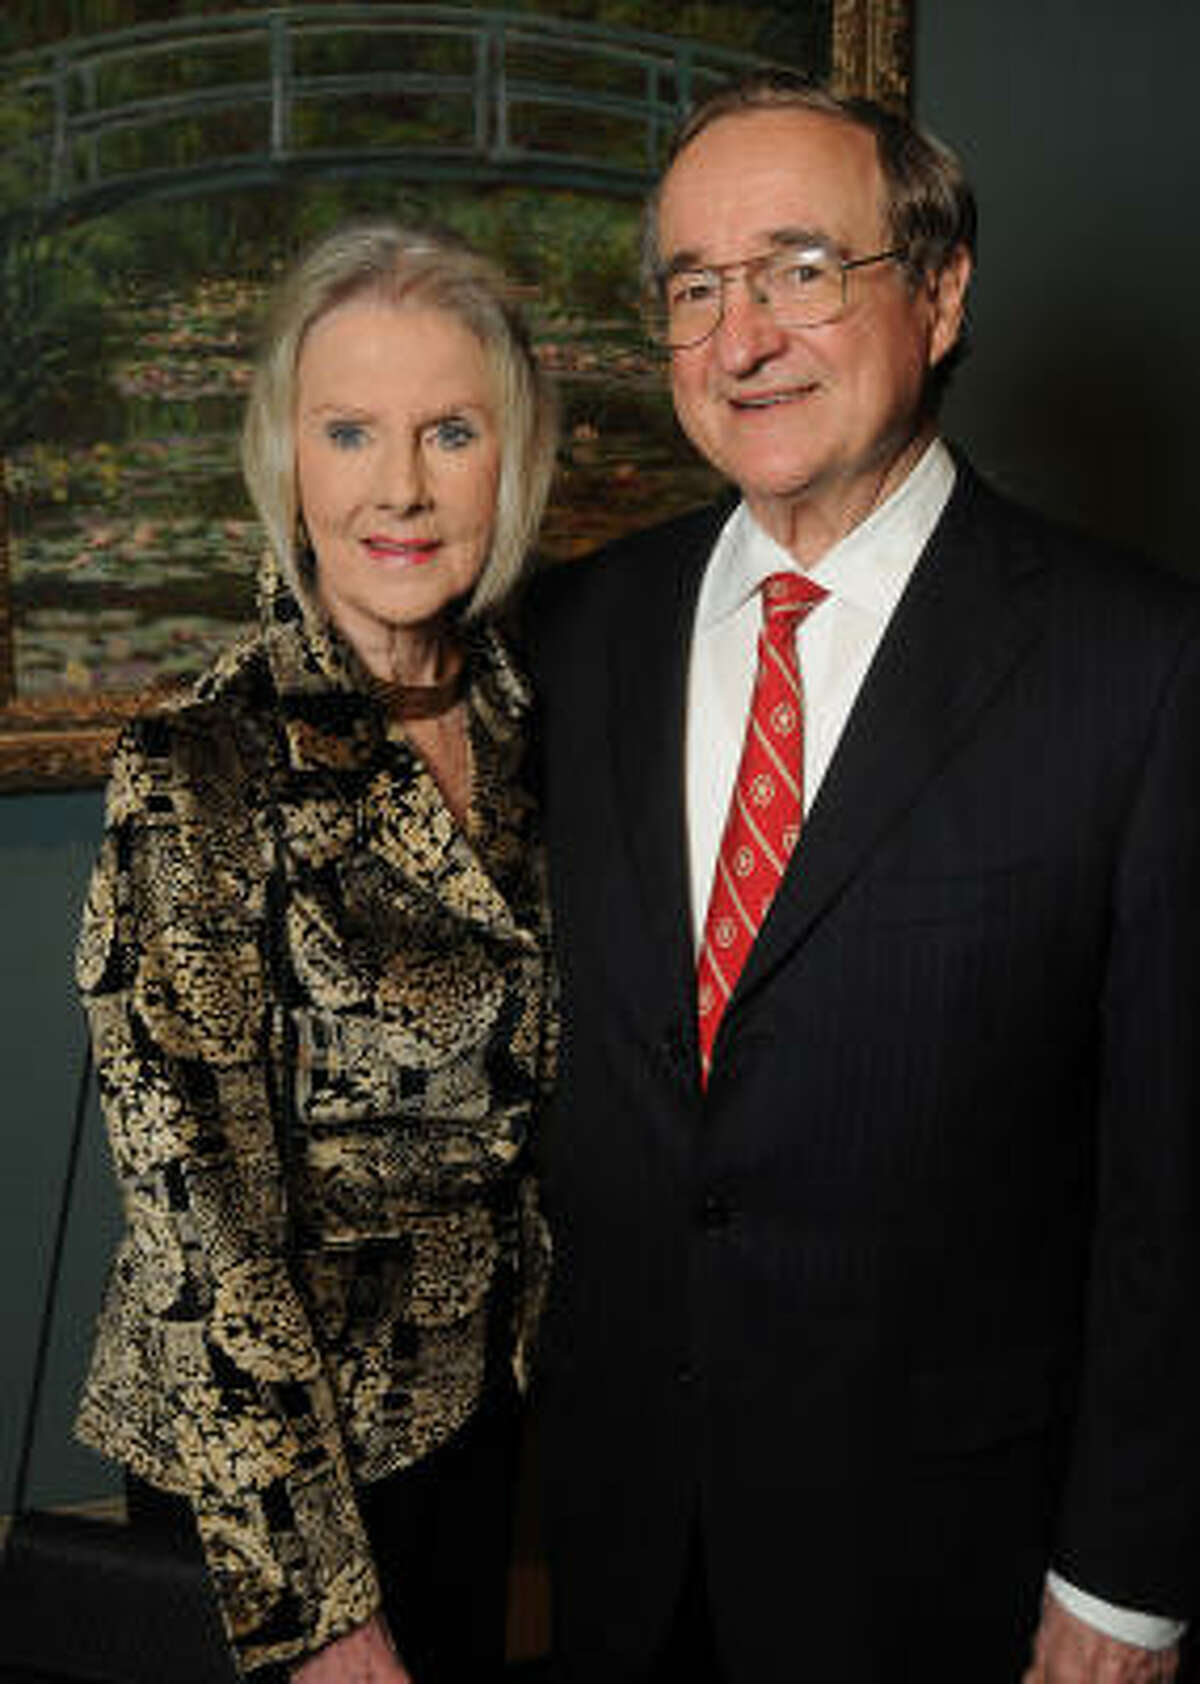 Macey and Henry Reasoner at the patrons dinner celebrating the exhibition Impressionist and Post-Impressionist Masterpieces from the National Gallery of Art at the Museum of Fine Arts Houston Wednesday Feb. 16,2011.